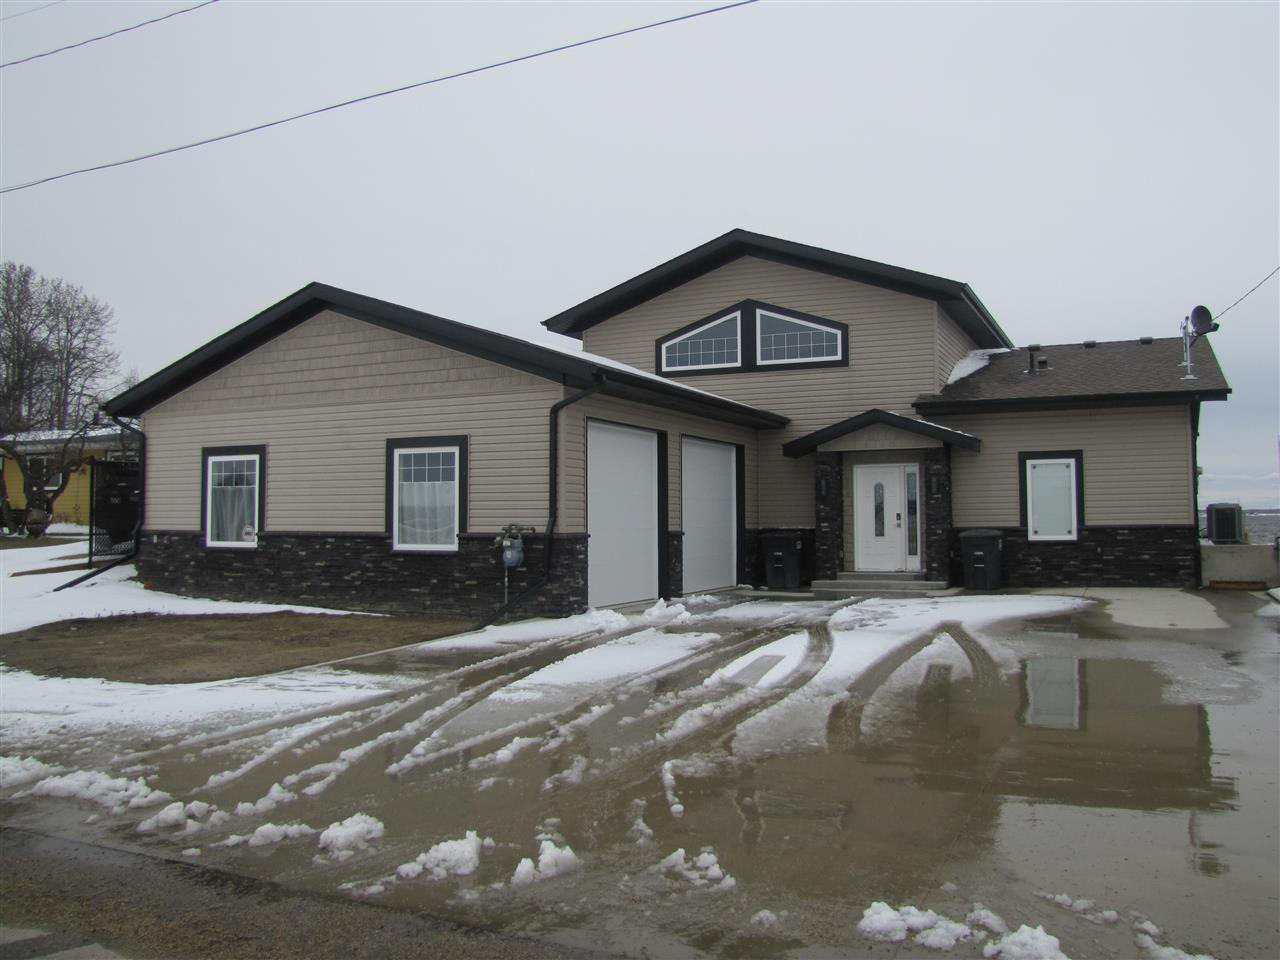 Main Photo: 6808 50 Avenue: Rural Lac Ste. Anne County House for sale : MLS®# E4219729